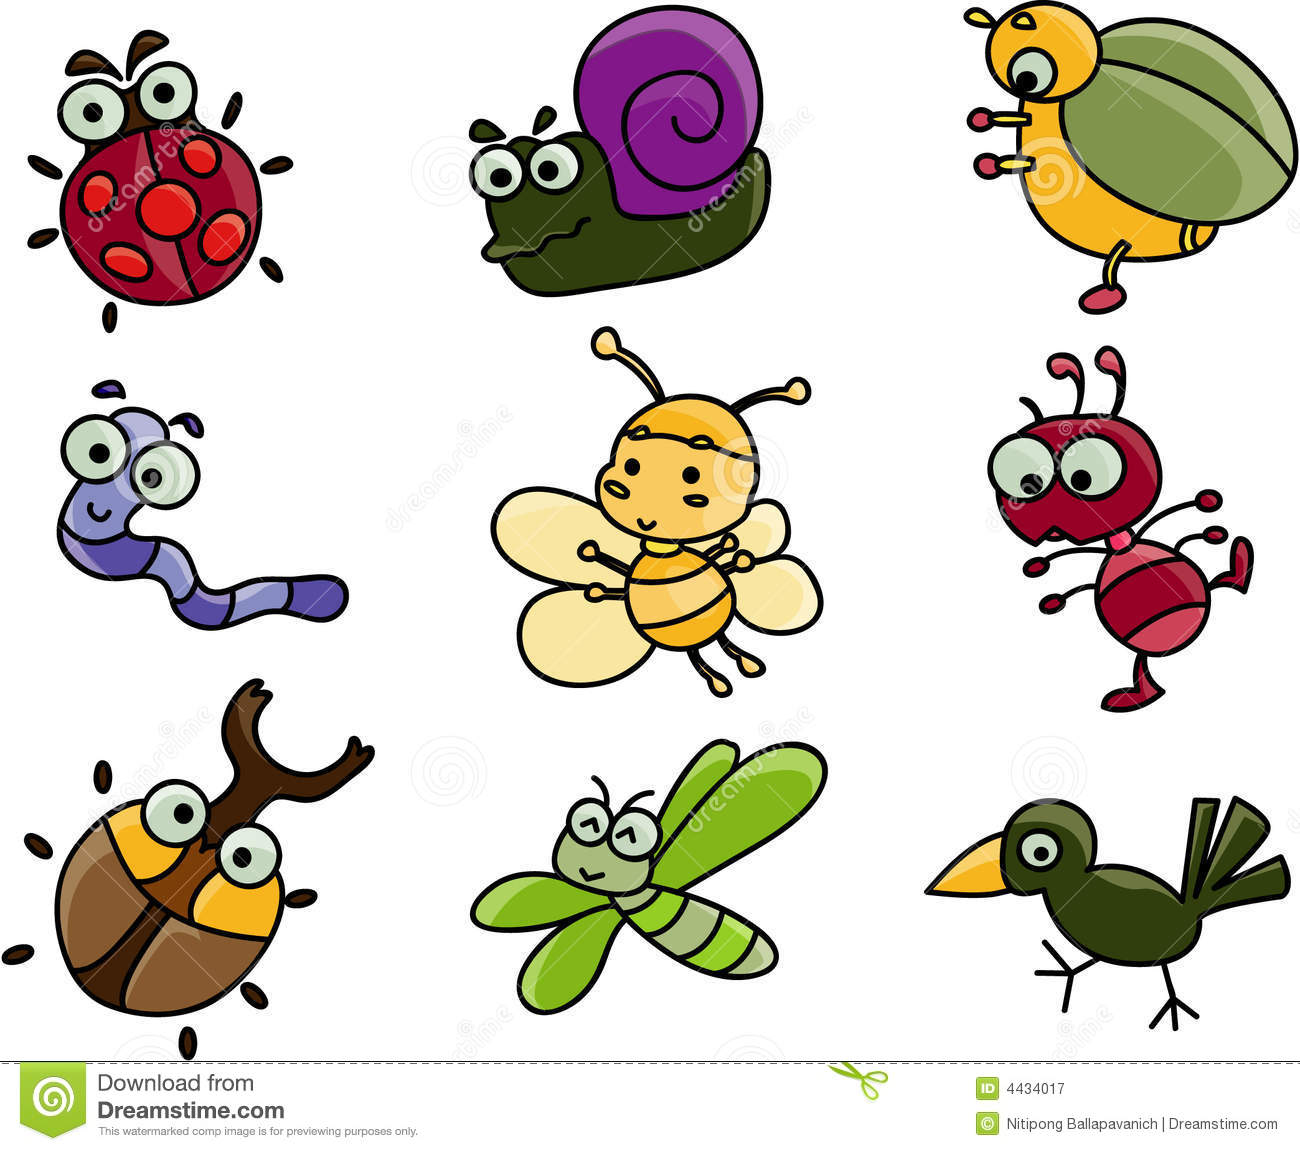 Dragonfly Planner Cute Cartoon Of Many Bugs Stock Vector Illustration Of